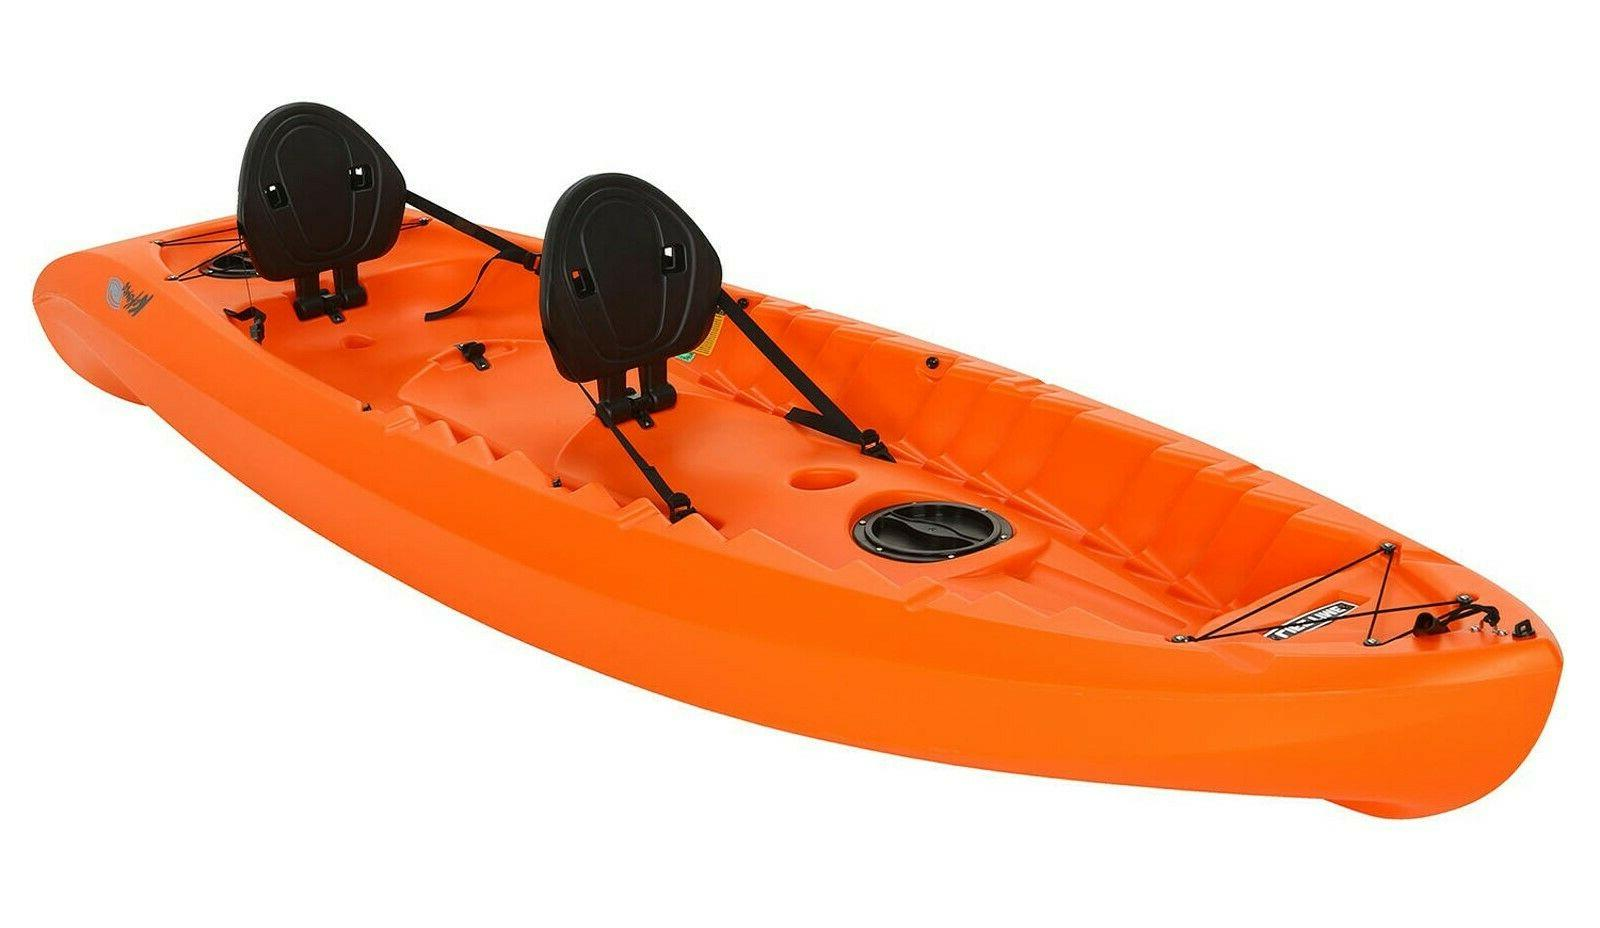 2 person tandem kayak two sit on